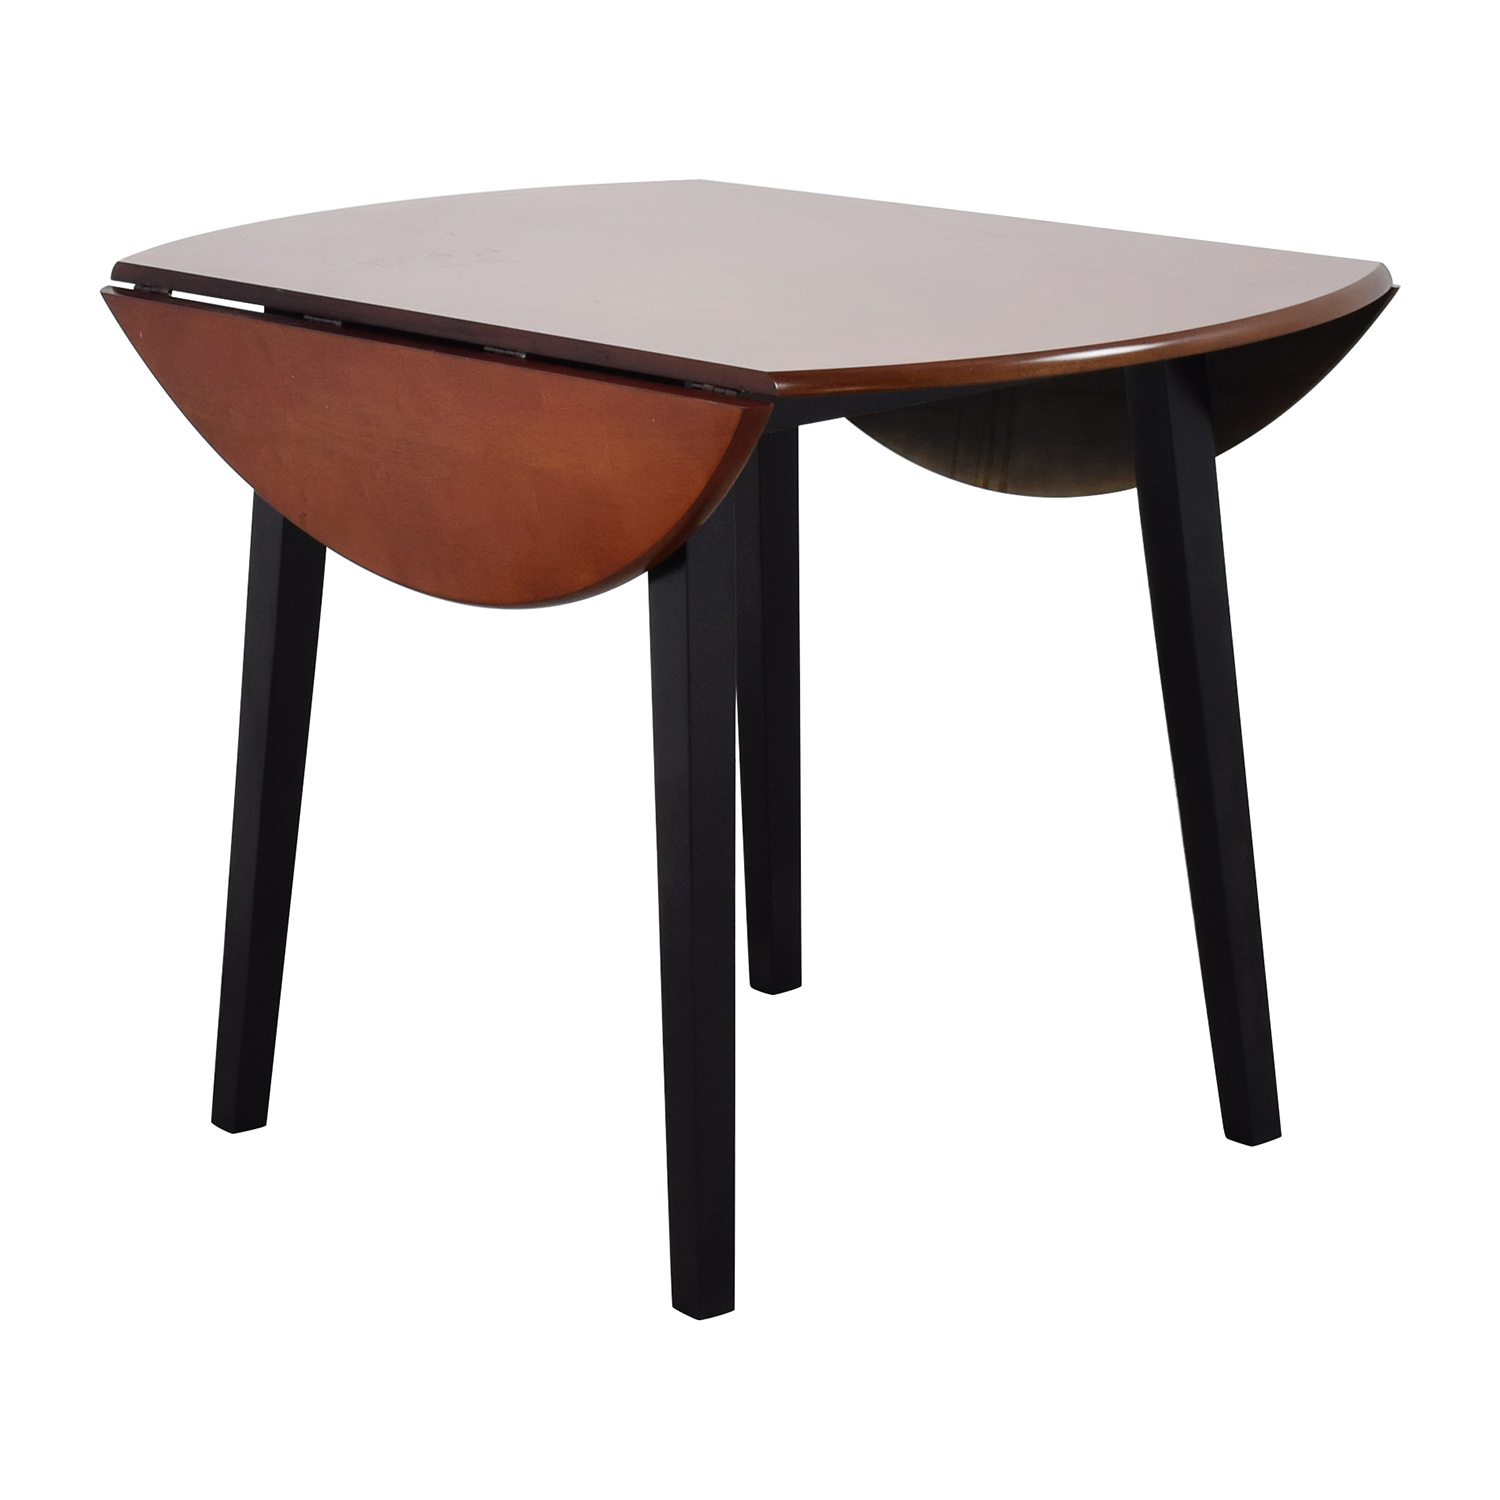 90 off bob 39 s furniture bob 39 s furniture brown wood round for Small round wood kitchen table